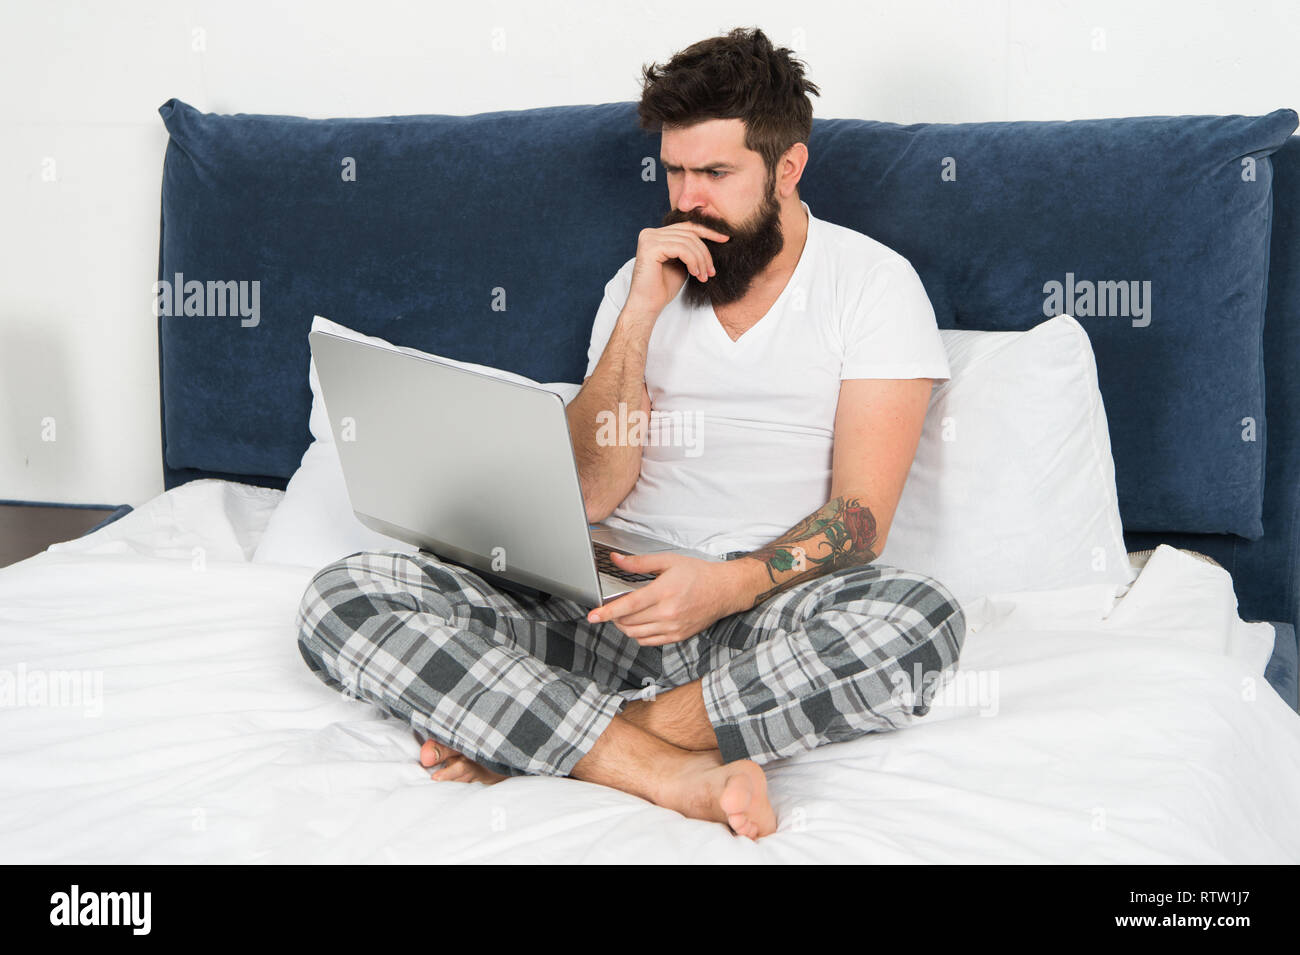 Freelance job. Stay in bed and keep working. Freelance benefits. Man surfing internet or working online. Hipster bearded guy pajamas freelance worker. Remote work concept. Online search job position. - Stock Image